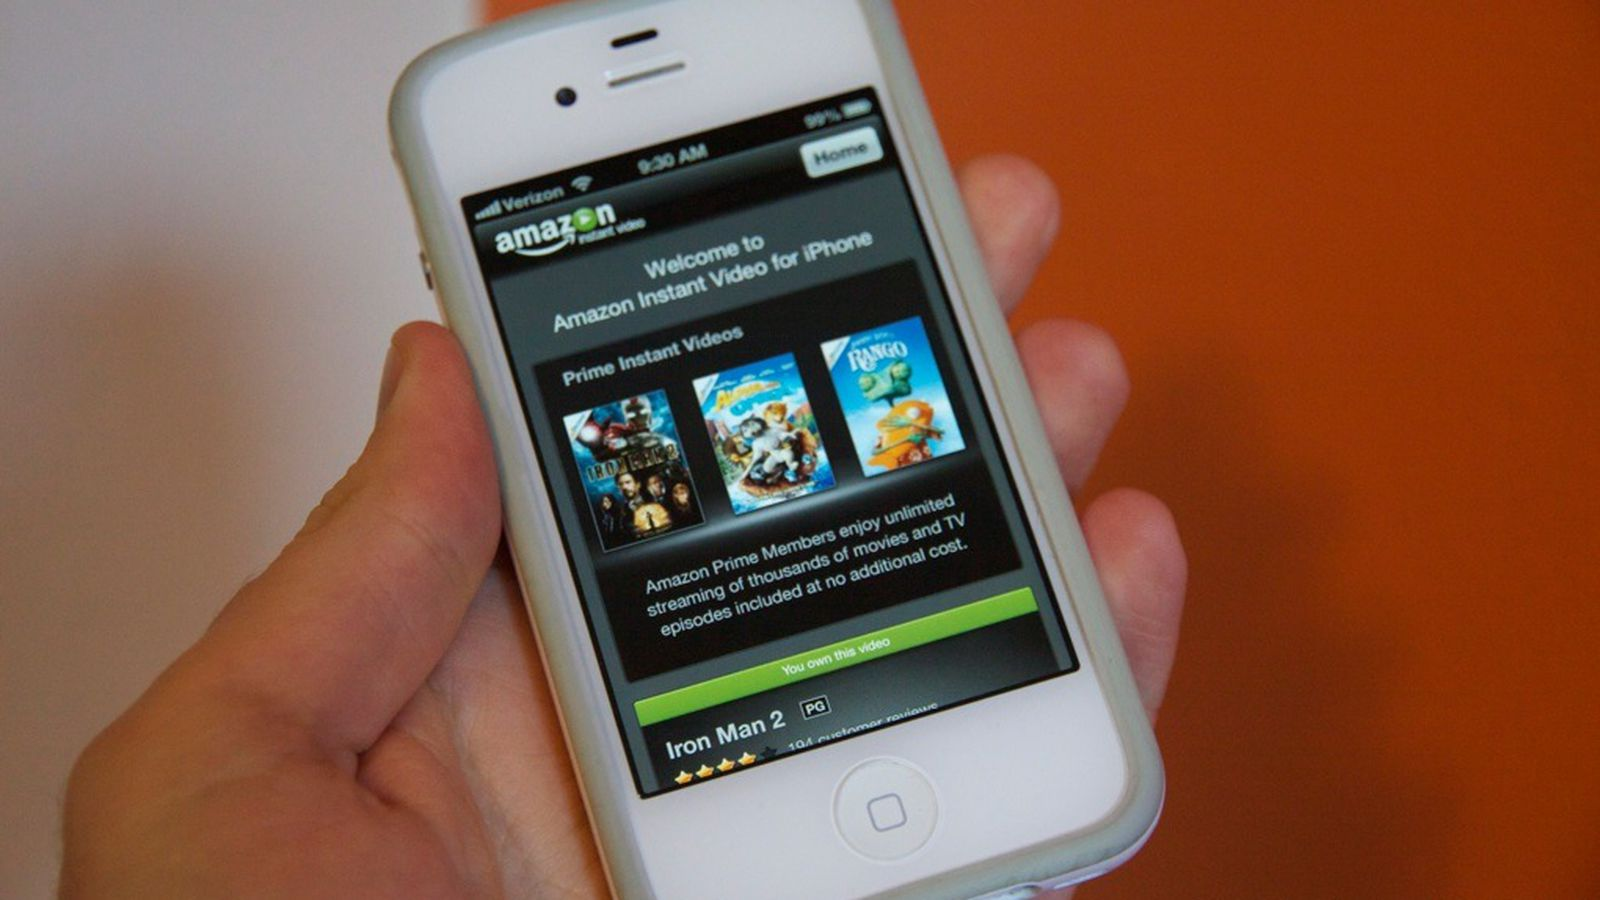 Amazon Instant Video app released for iPhone and iPod touch